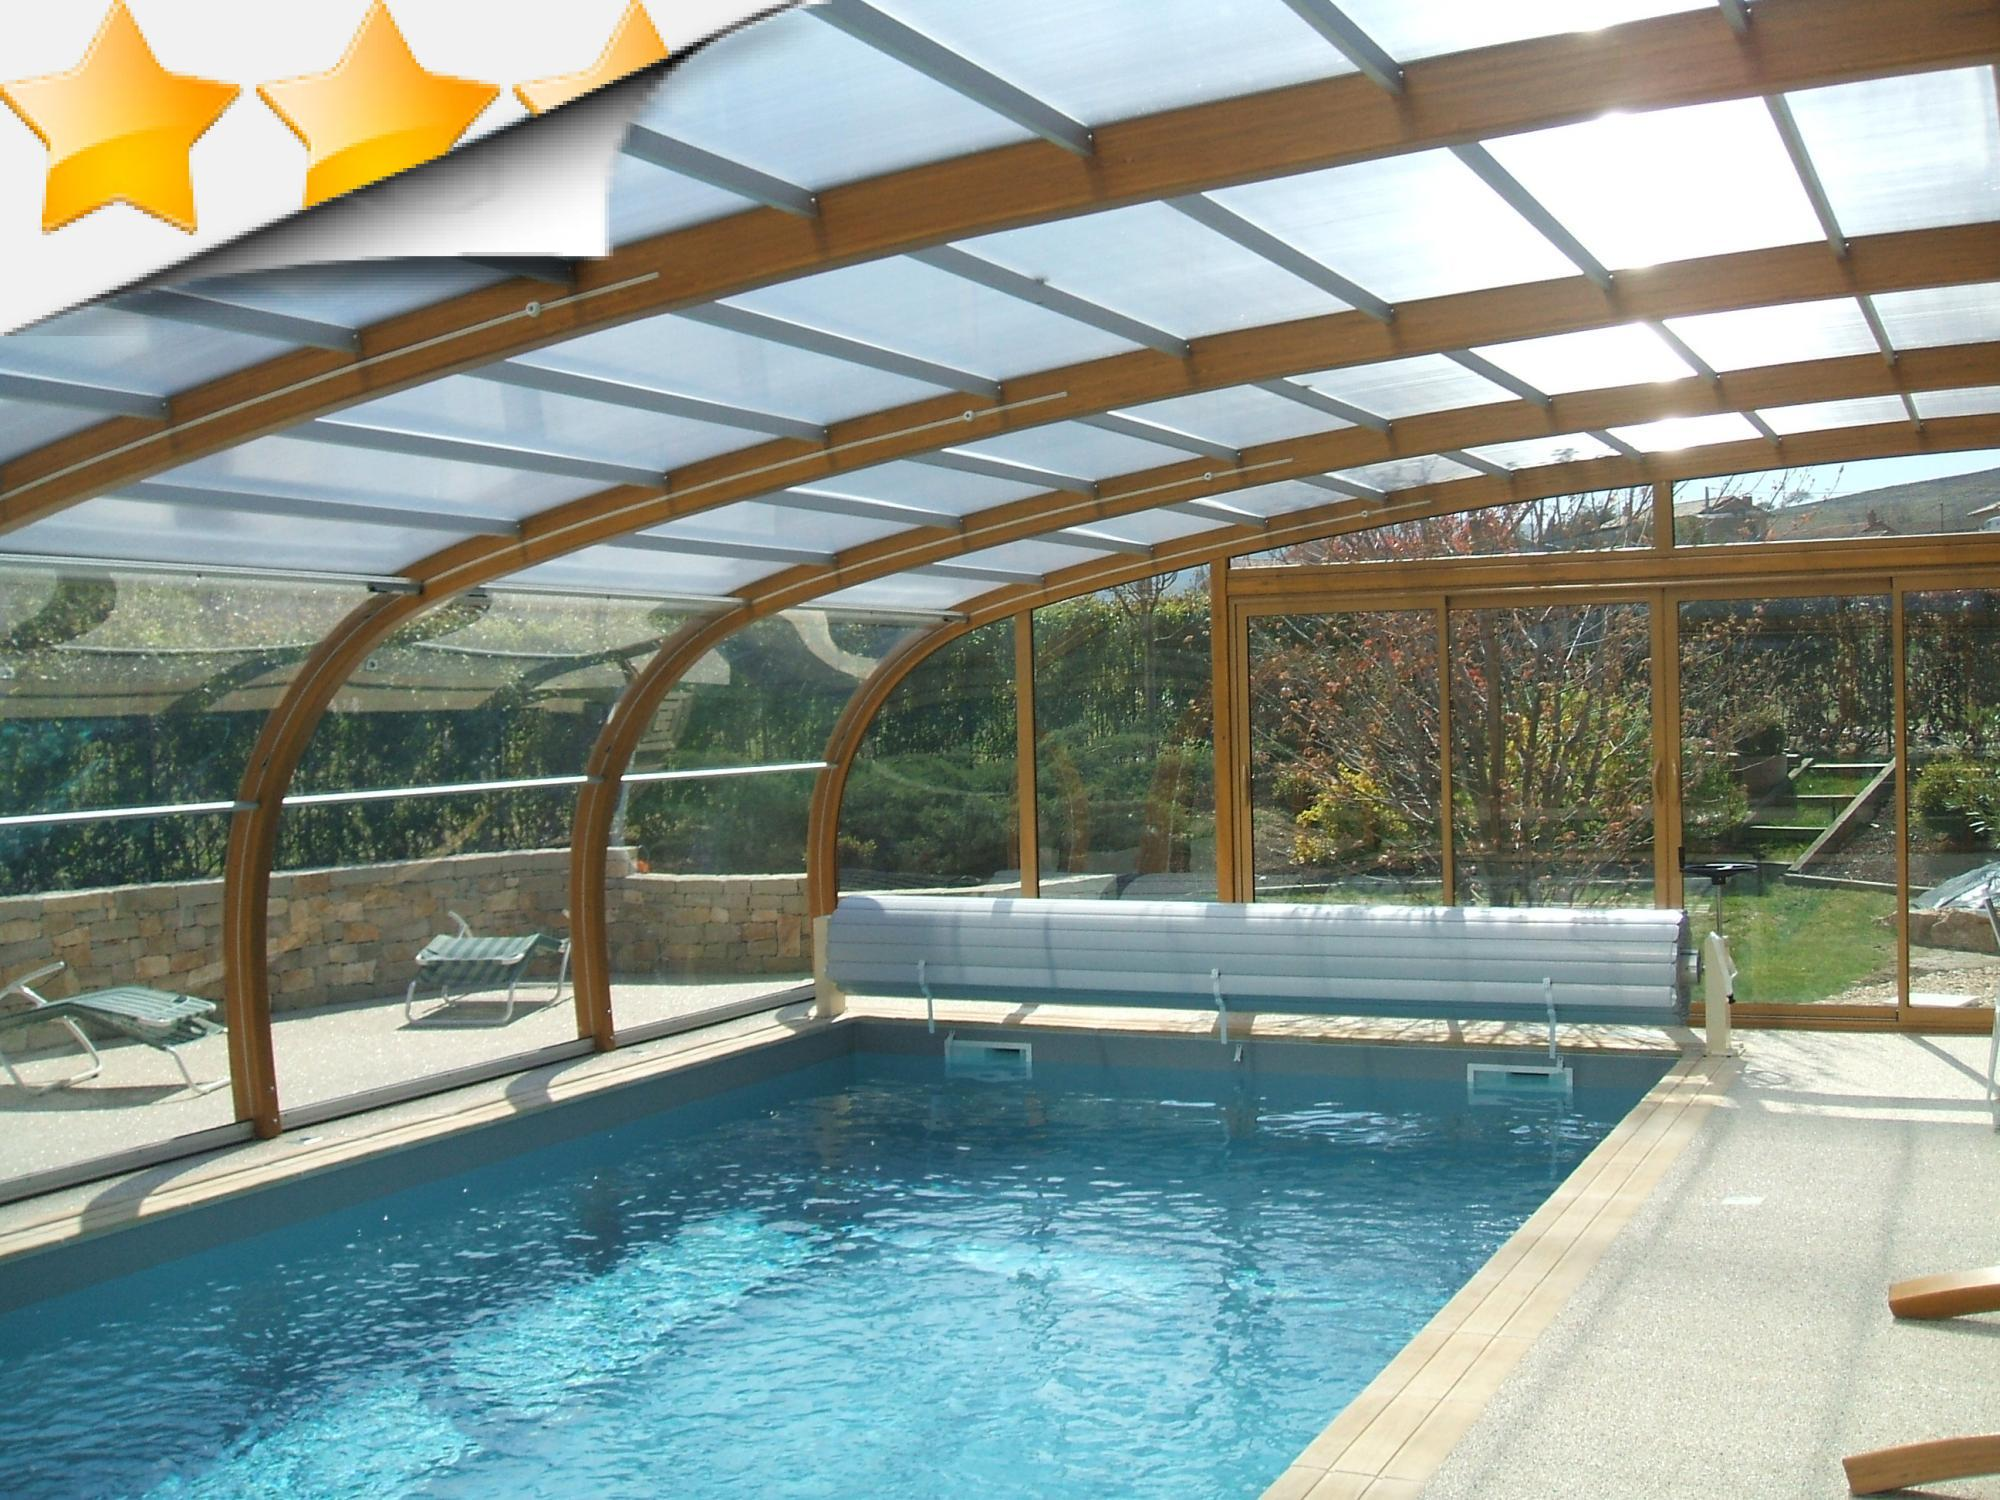 Abri piscine bois 39 ambiance 39 s curit par lpc for Construction piscine 76